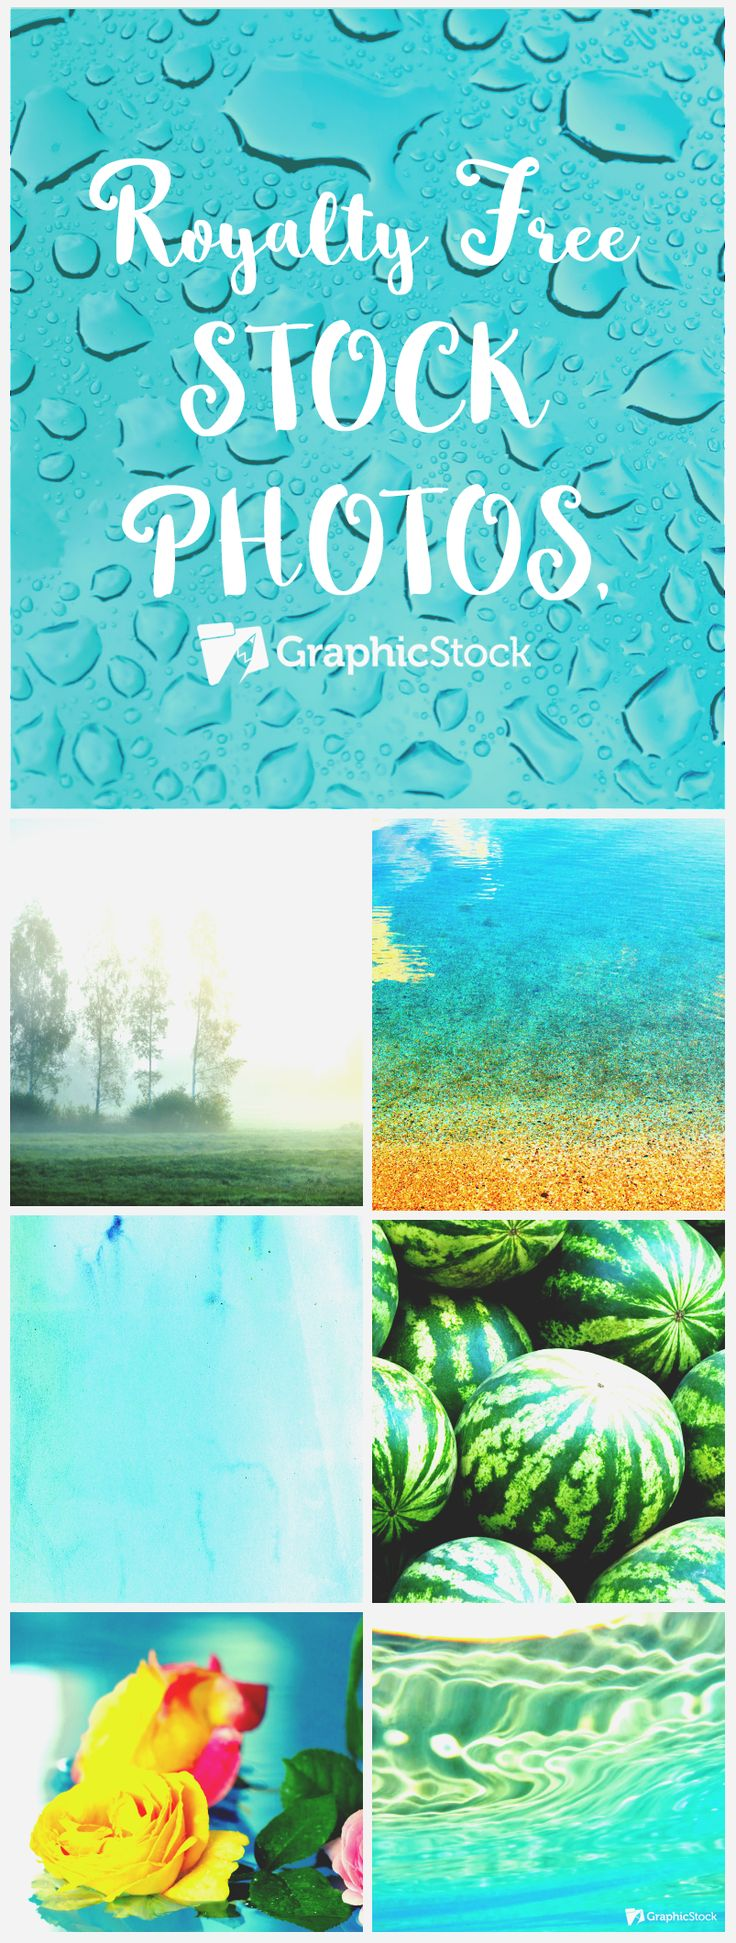 All graphics newest royalty free stock photos stock illustrations - Modern Bright Summer Royalty Free Stock Images